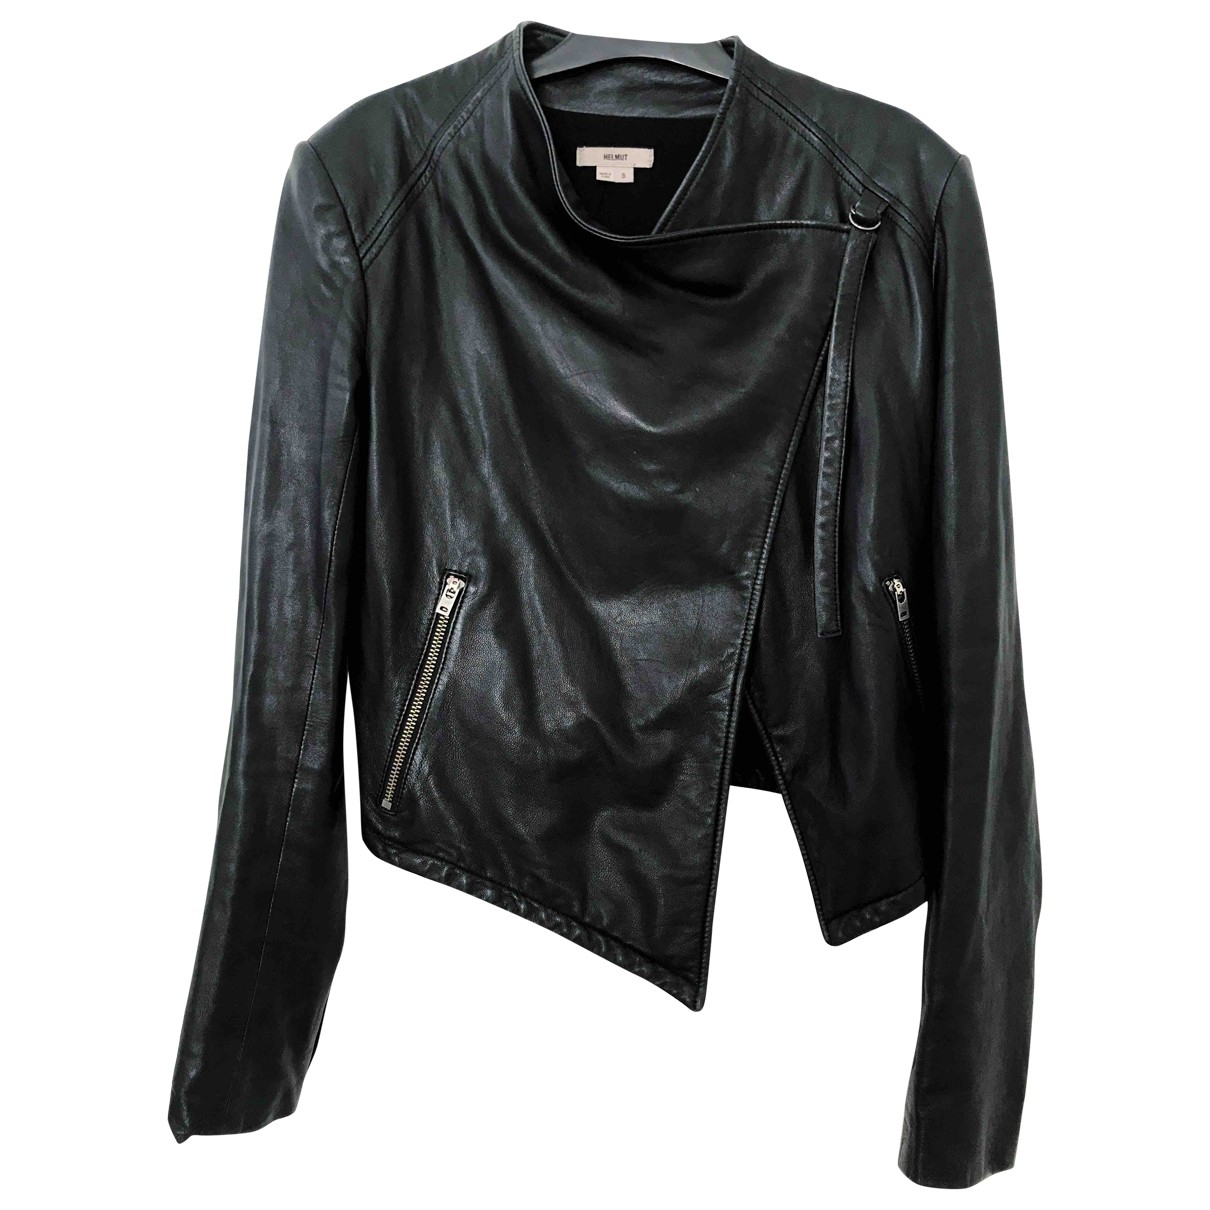 Helmut Lang \N Black Leather jacket for Women S International